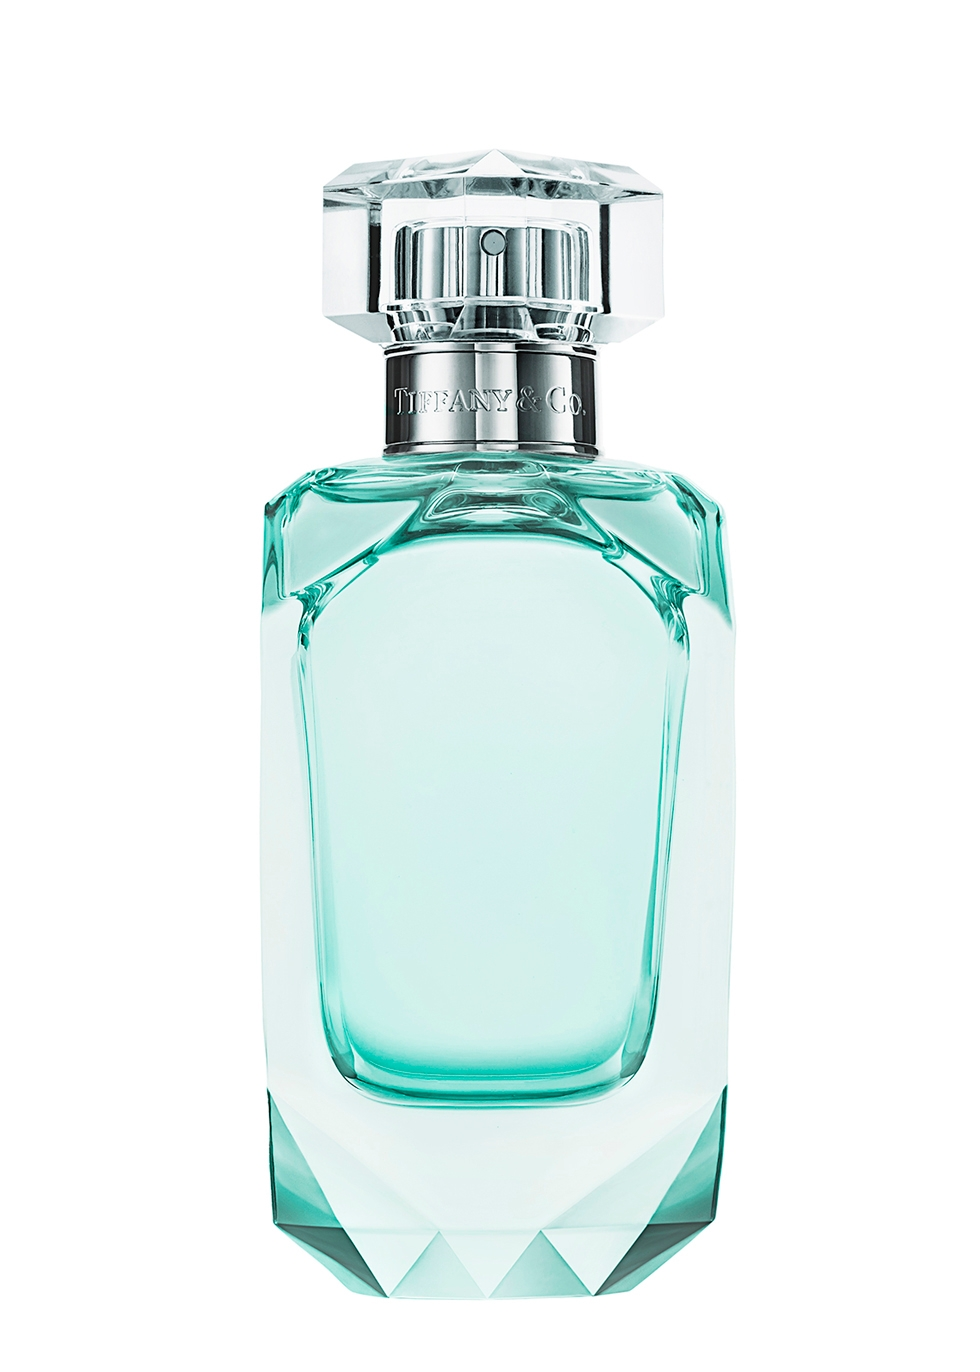 Tiffany Intense Eau De Parfum 75ml - TIFFANY